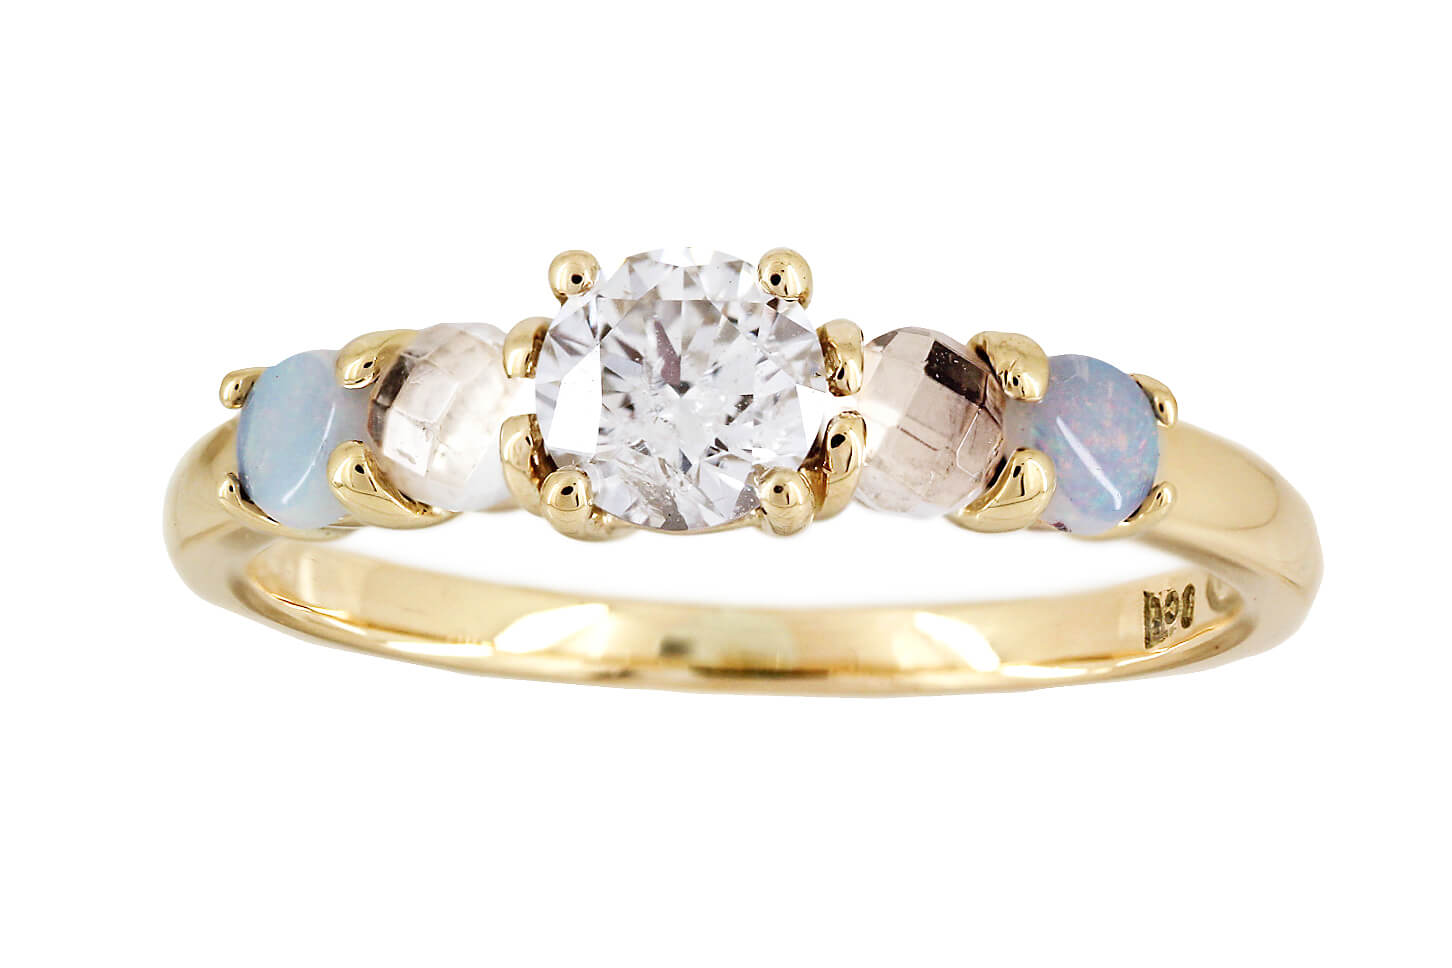 Diamond Opal Moonstonse Ring   2